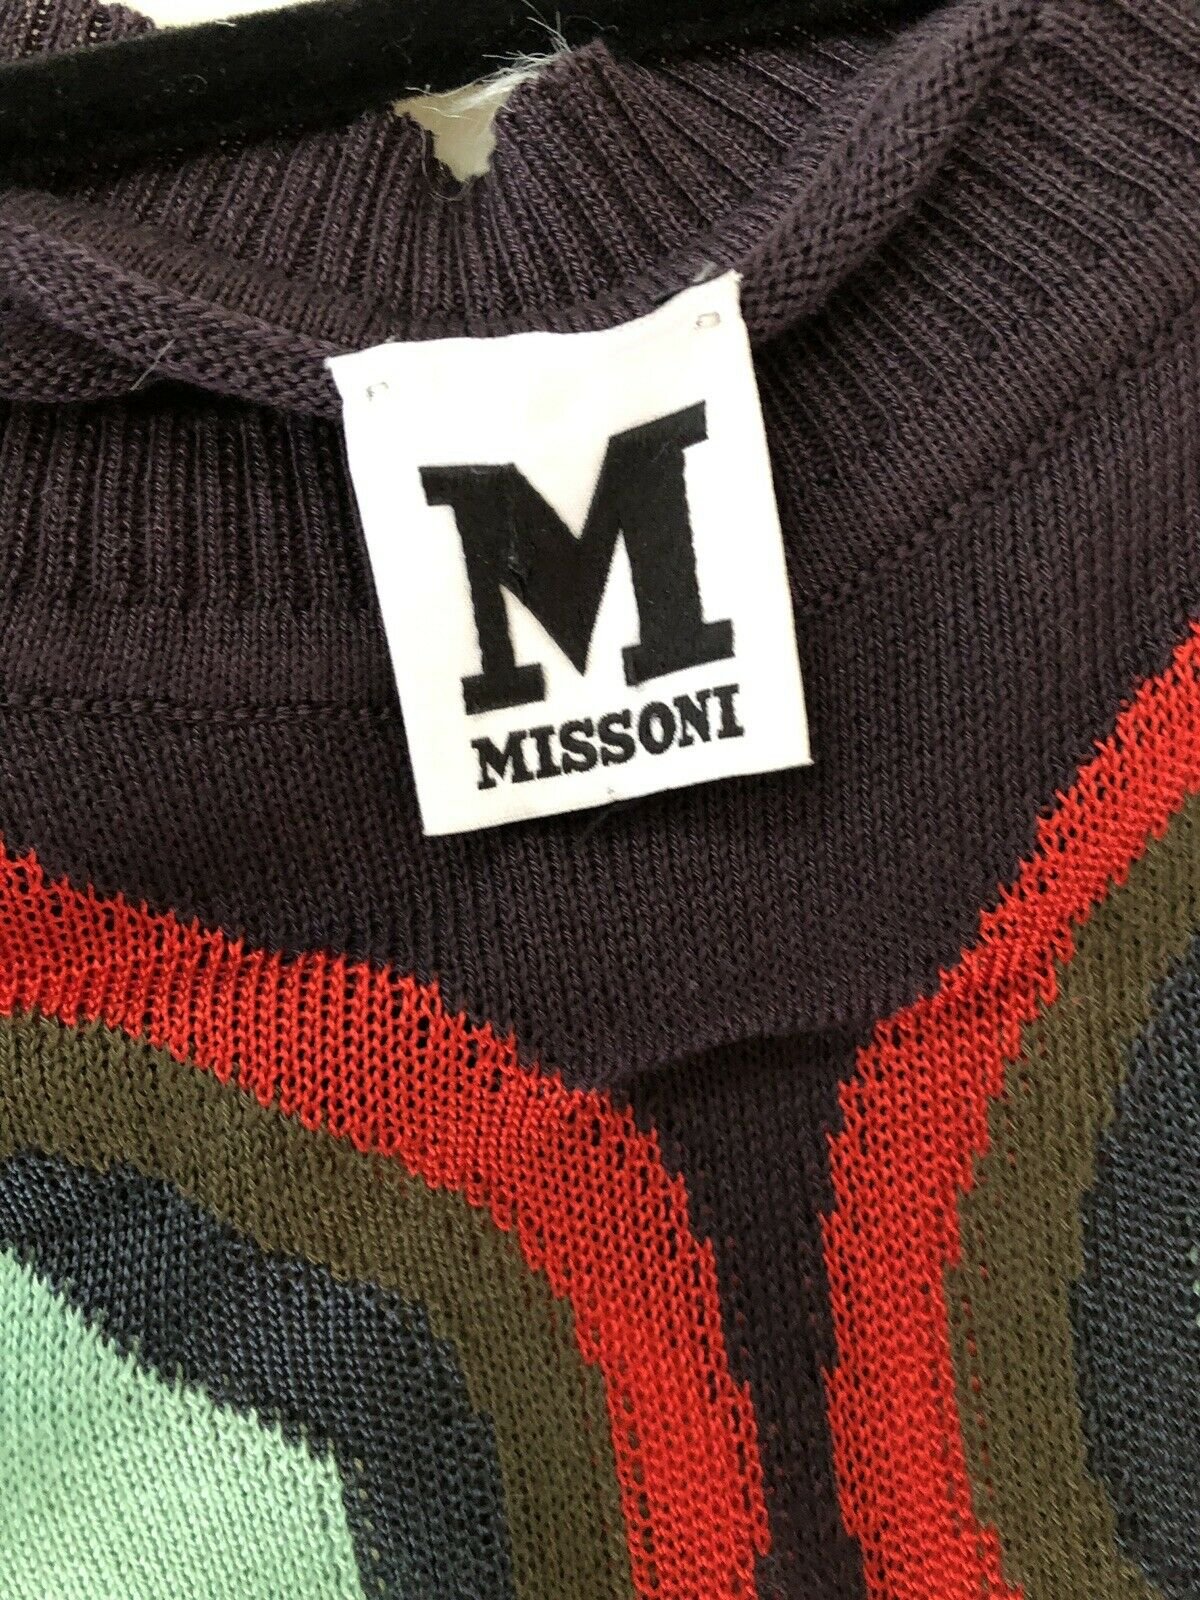 MISSONI Sexy Pattern colorful Rare Vintage Vintage Vintage Thin Mini Dress Size Small 830d6d